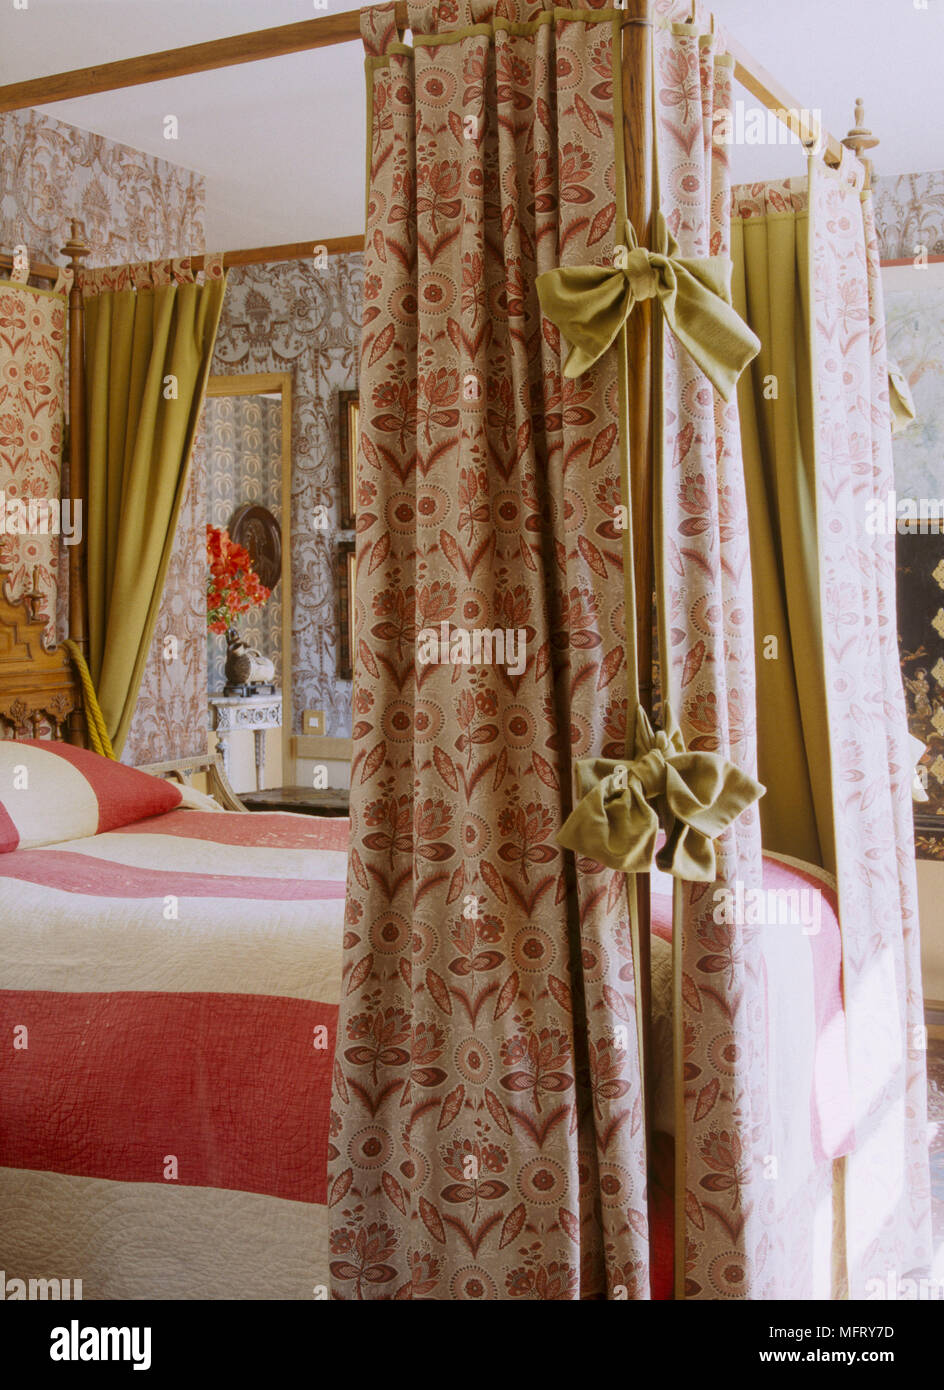 A Detail Of A Traditional Bedroom Four Poster Bed With Pattern Drapes Striped Bed Cover Stock Photo Alamy